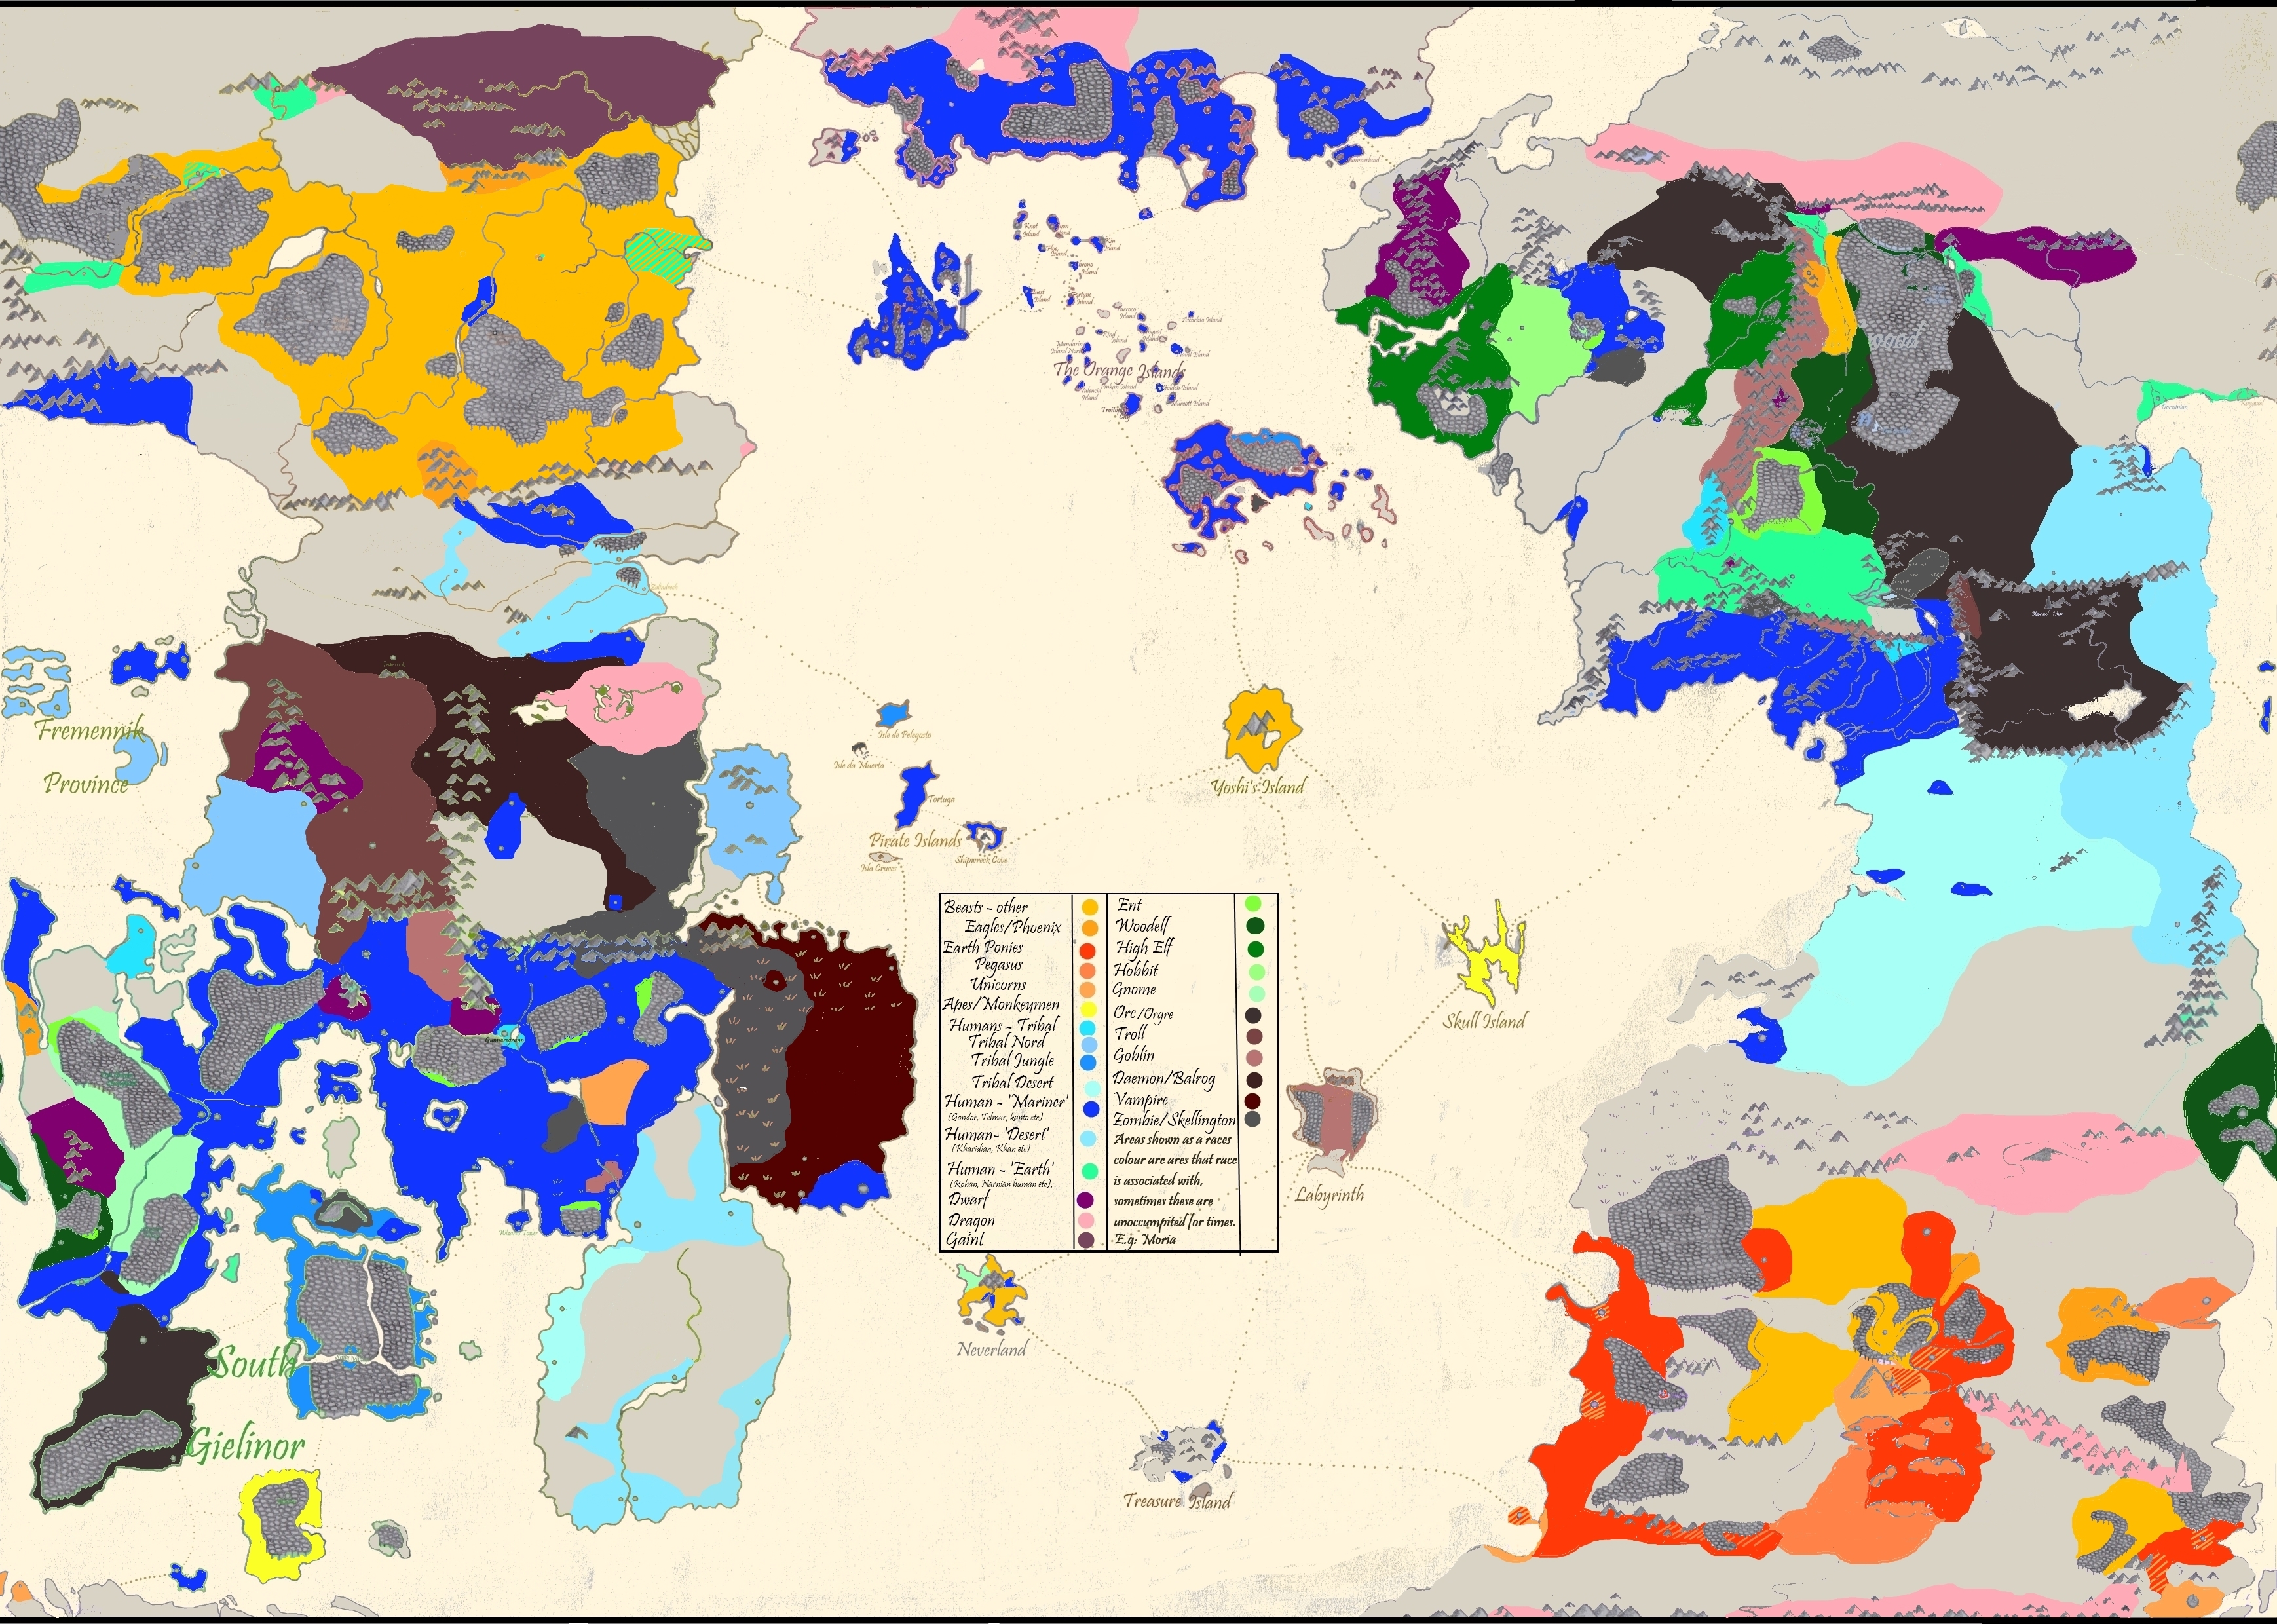 Fantasy Risk Demographic Map By JMThought On DeviantArt - Demographic map